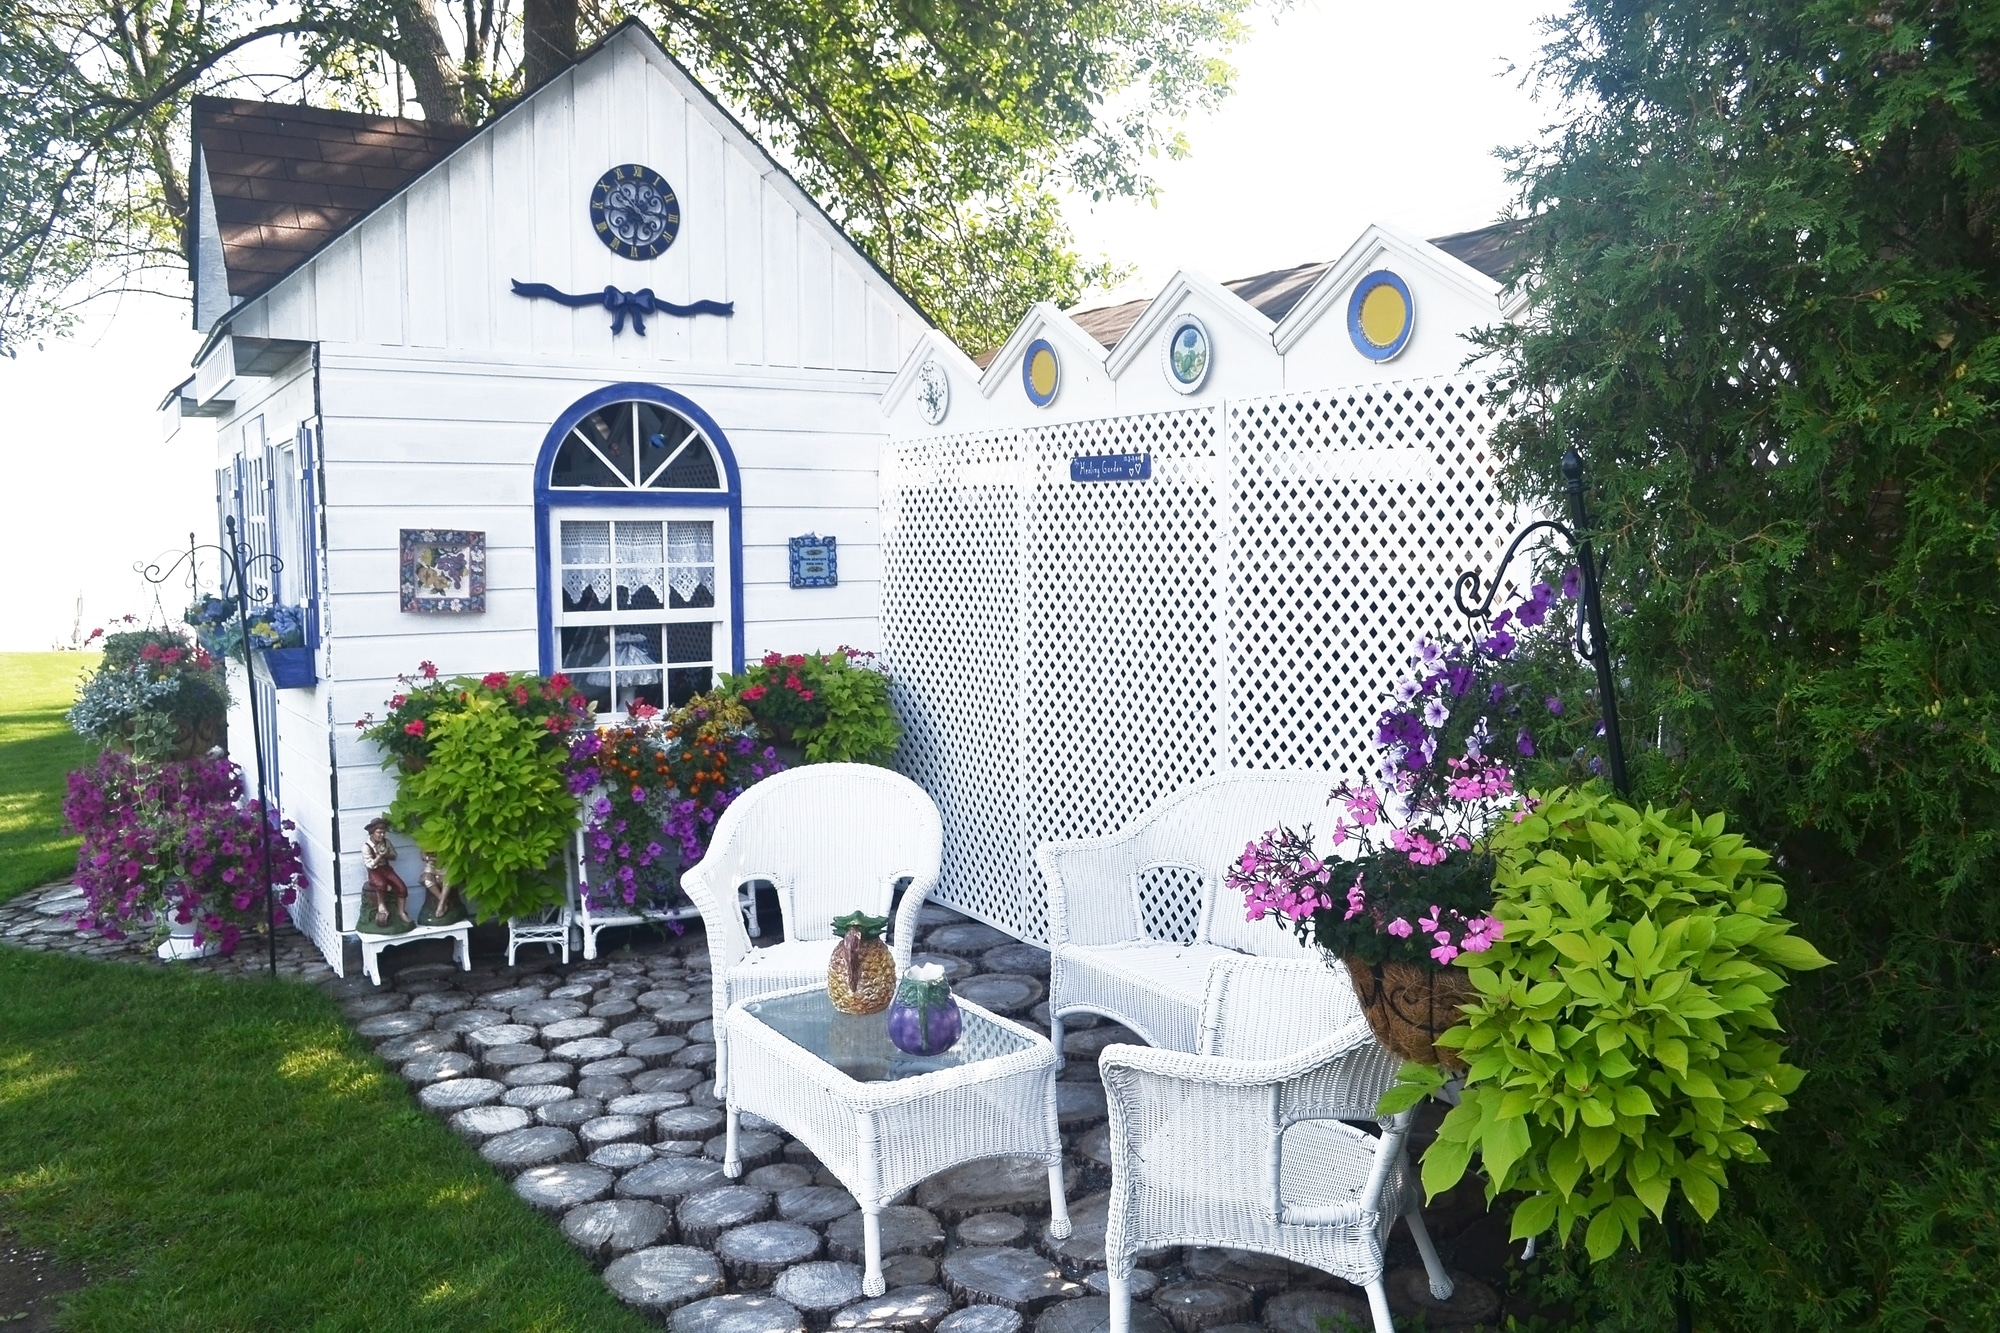 A beautiful small shed with nice chairs and a lot of flowers in the backyard, painted new in white.